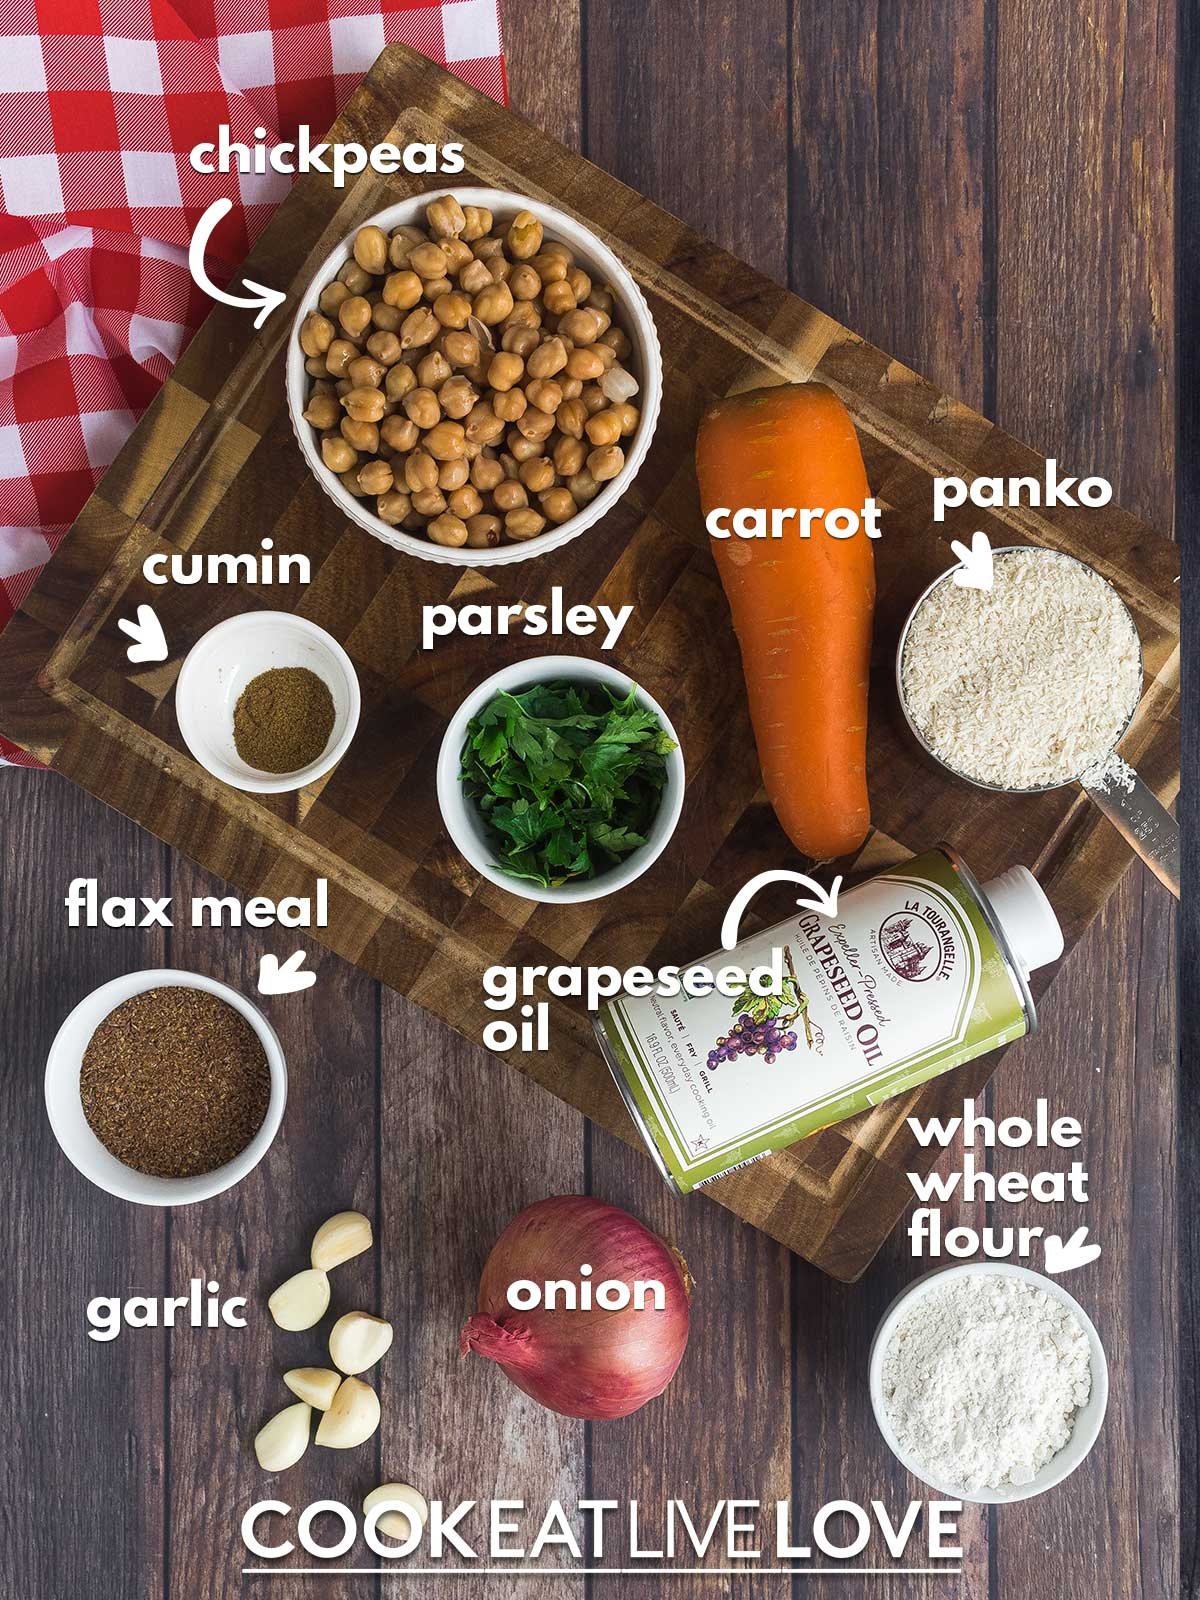 Ingredients to make vegan chickpea burgers on the table with text labels